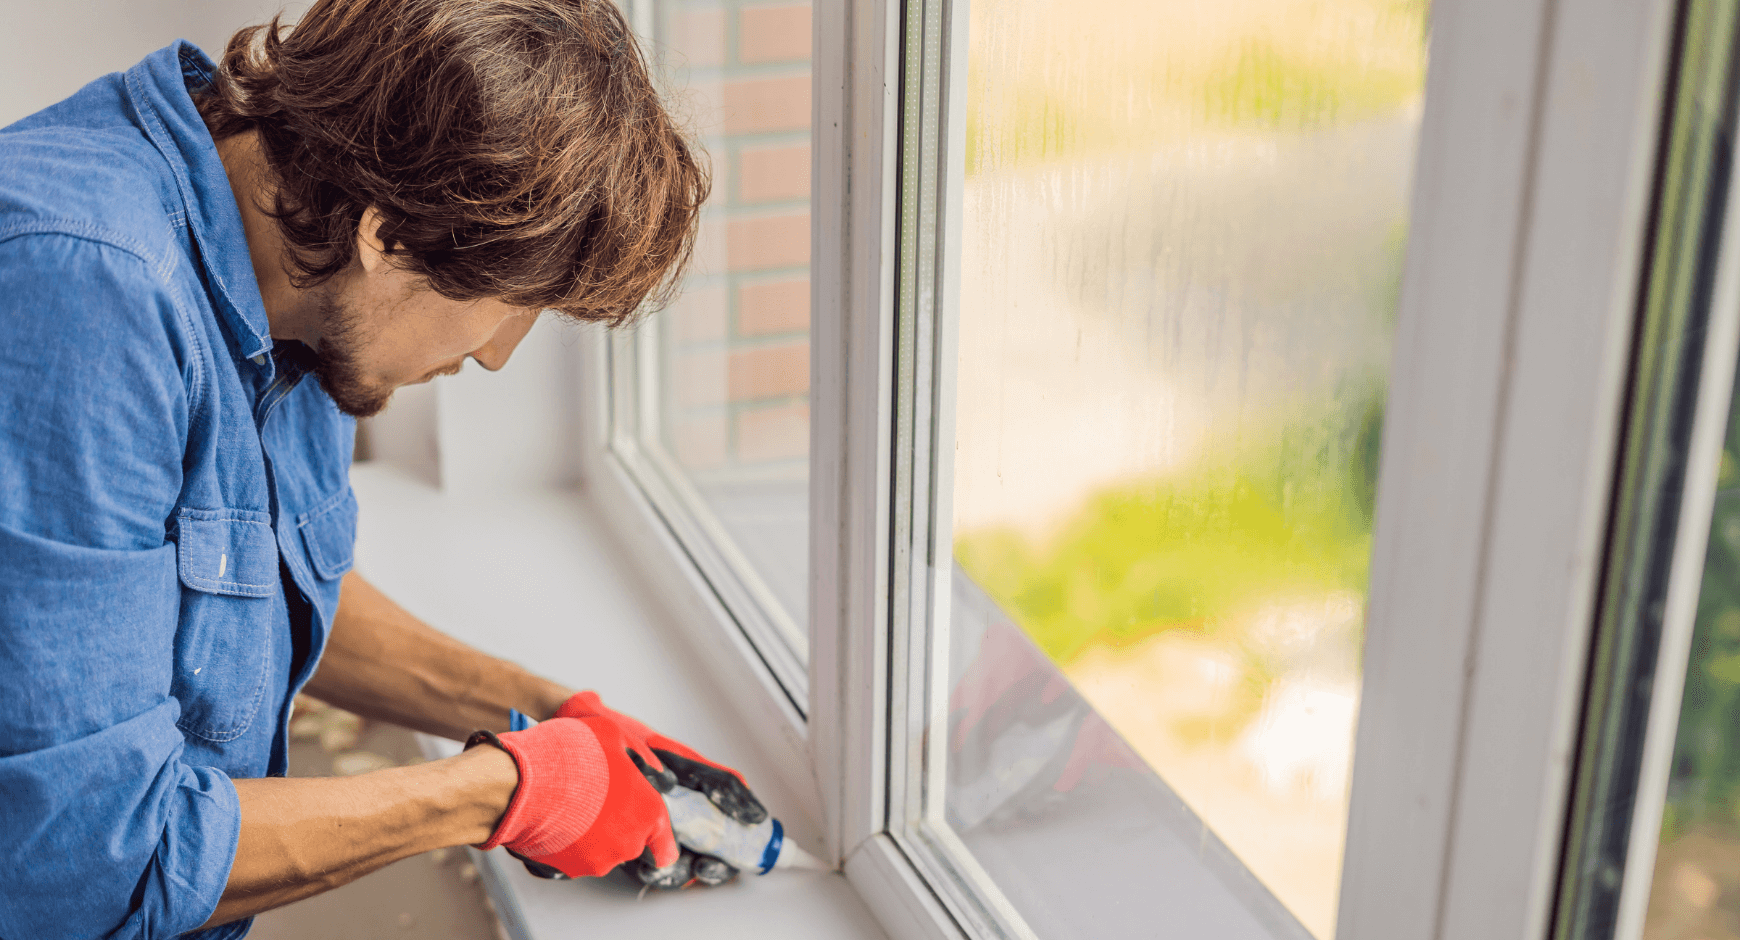 Image of a man installing a new window